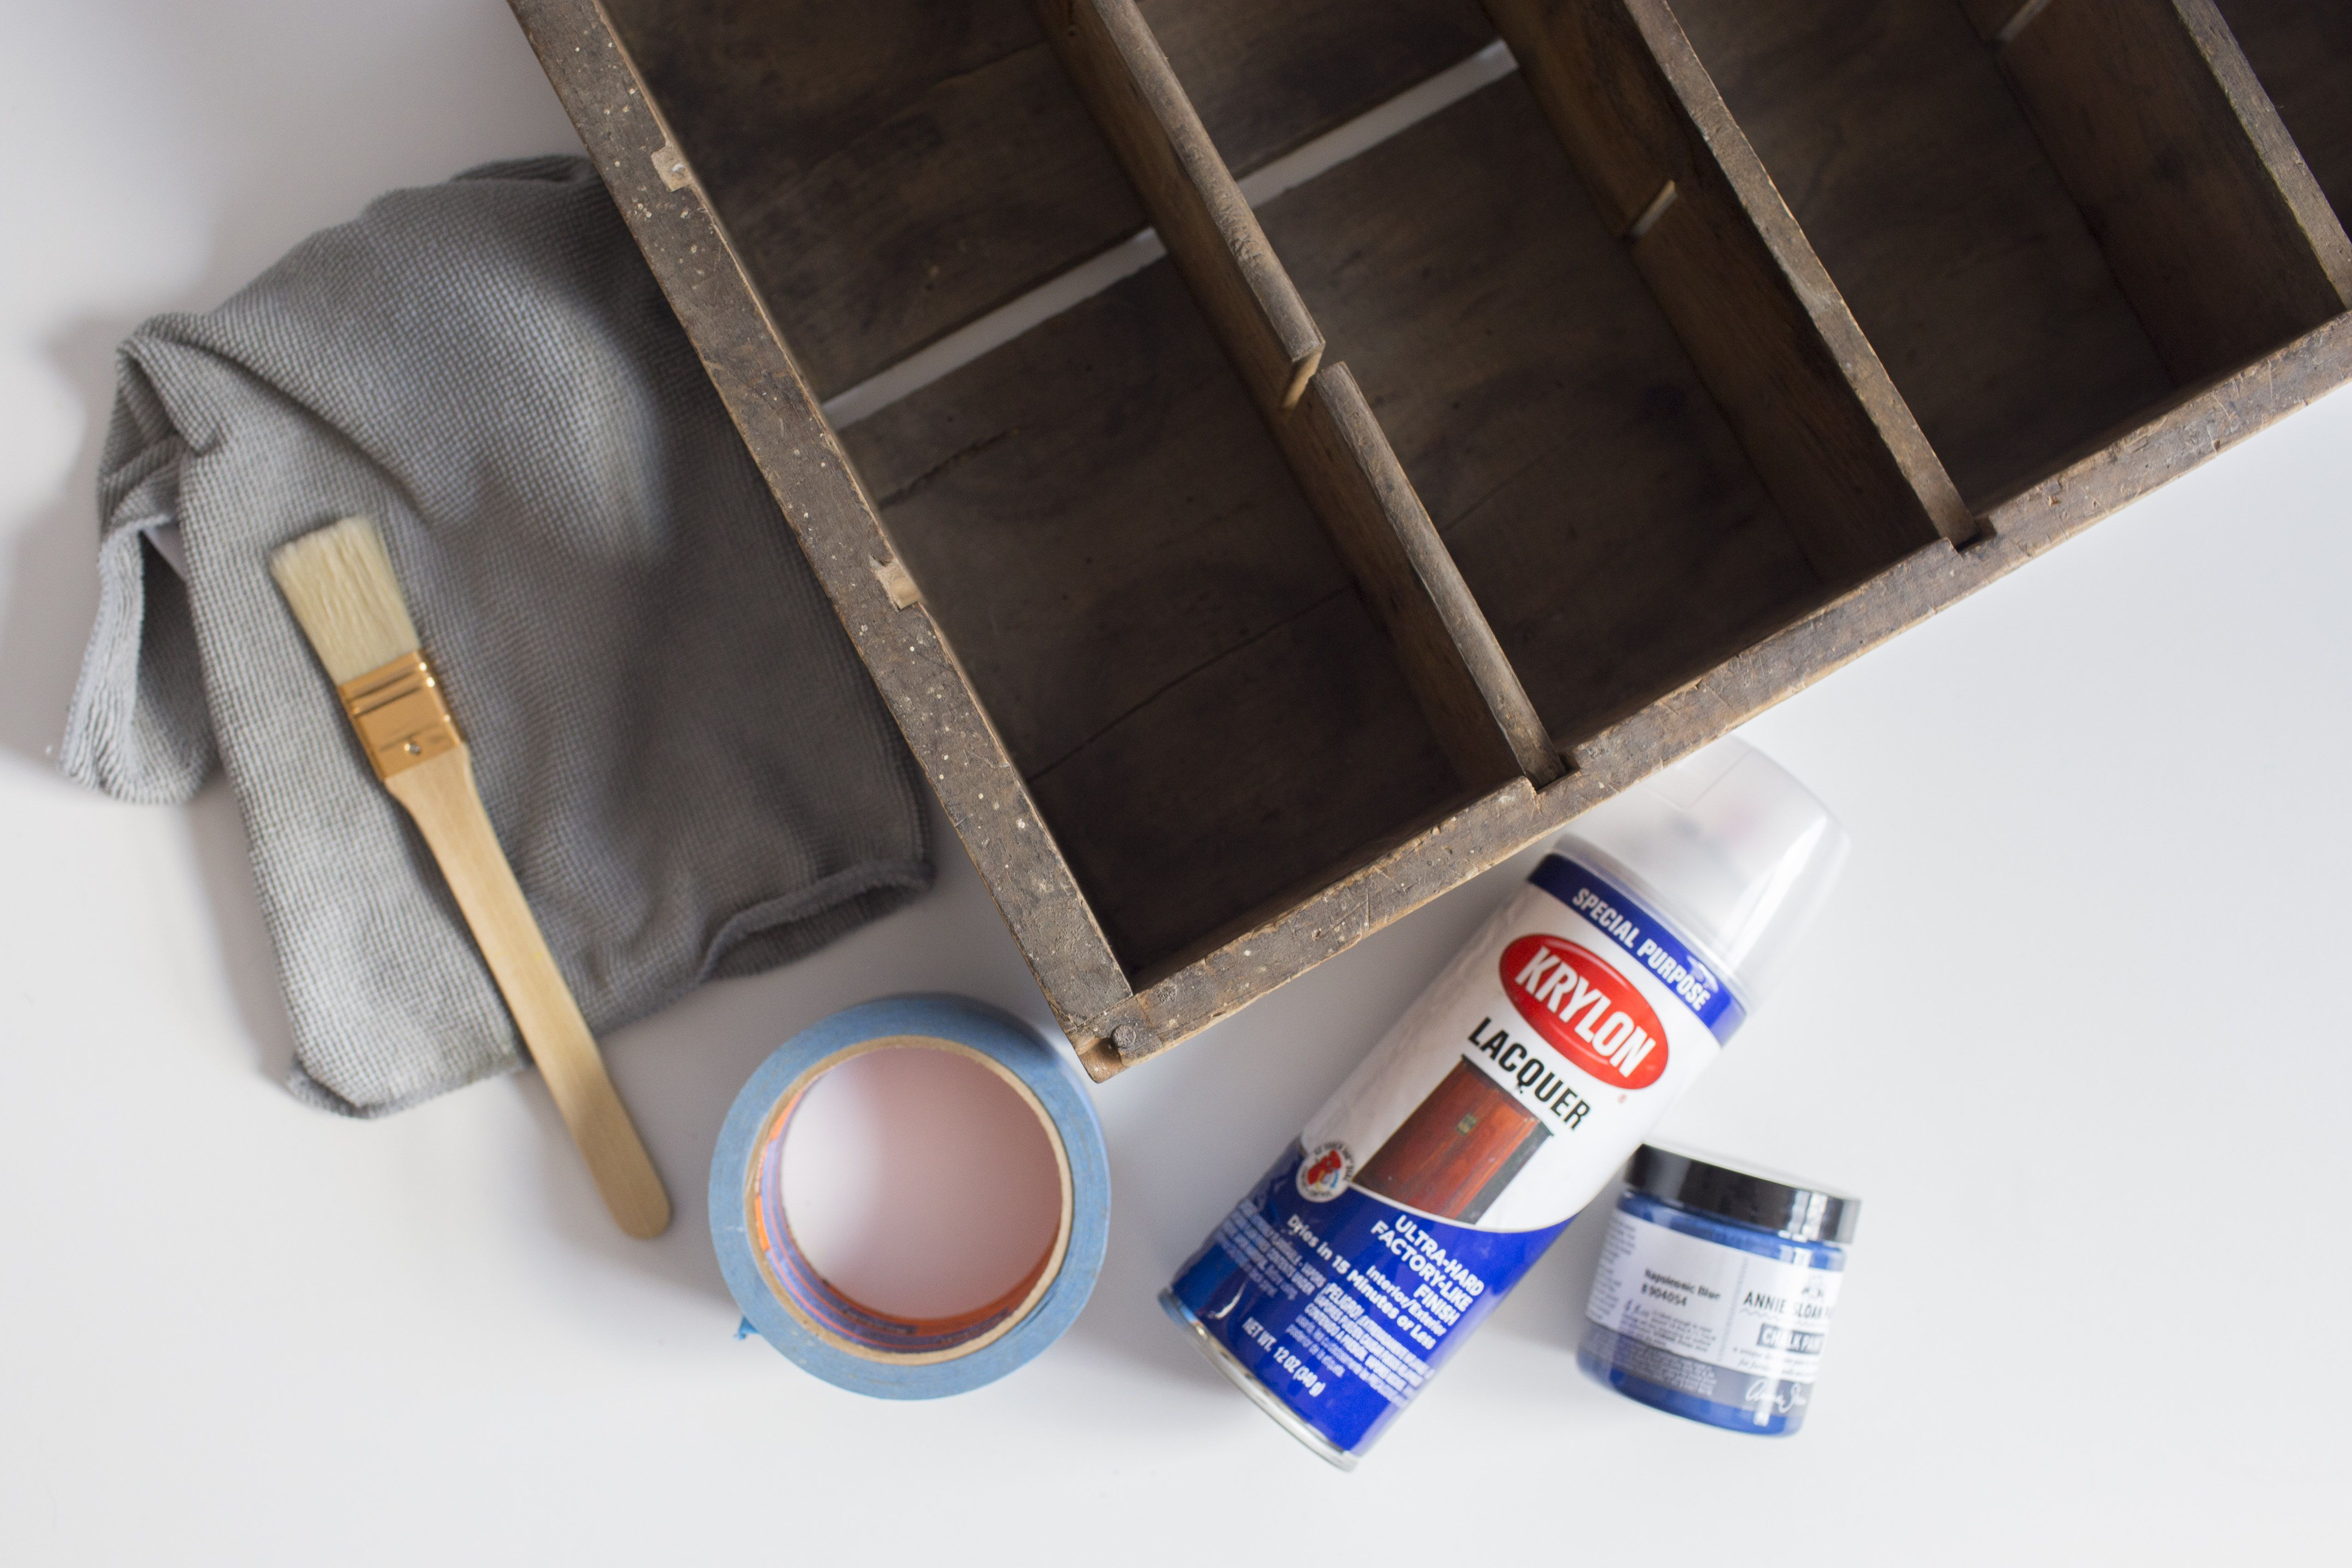 Materials needed to spruce up a wooden crate